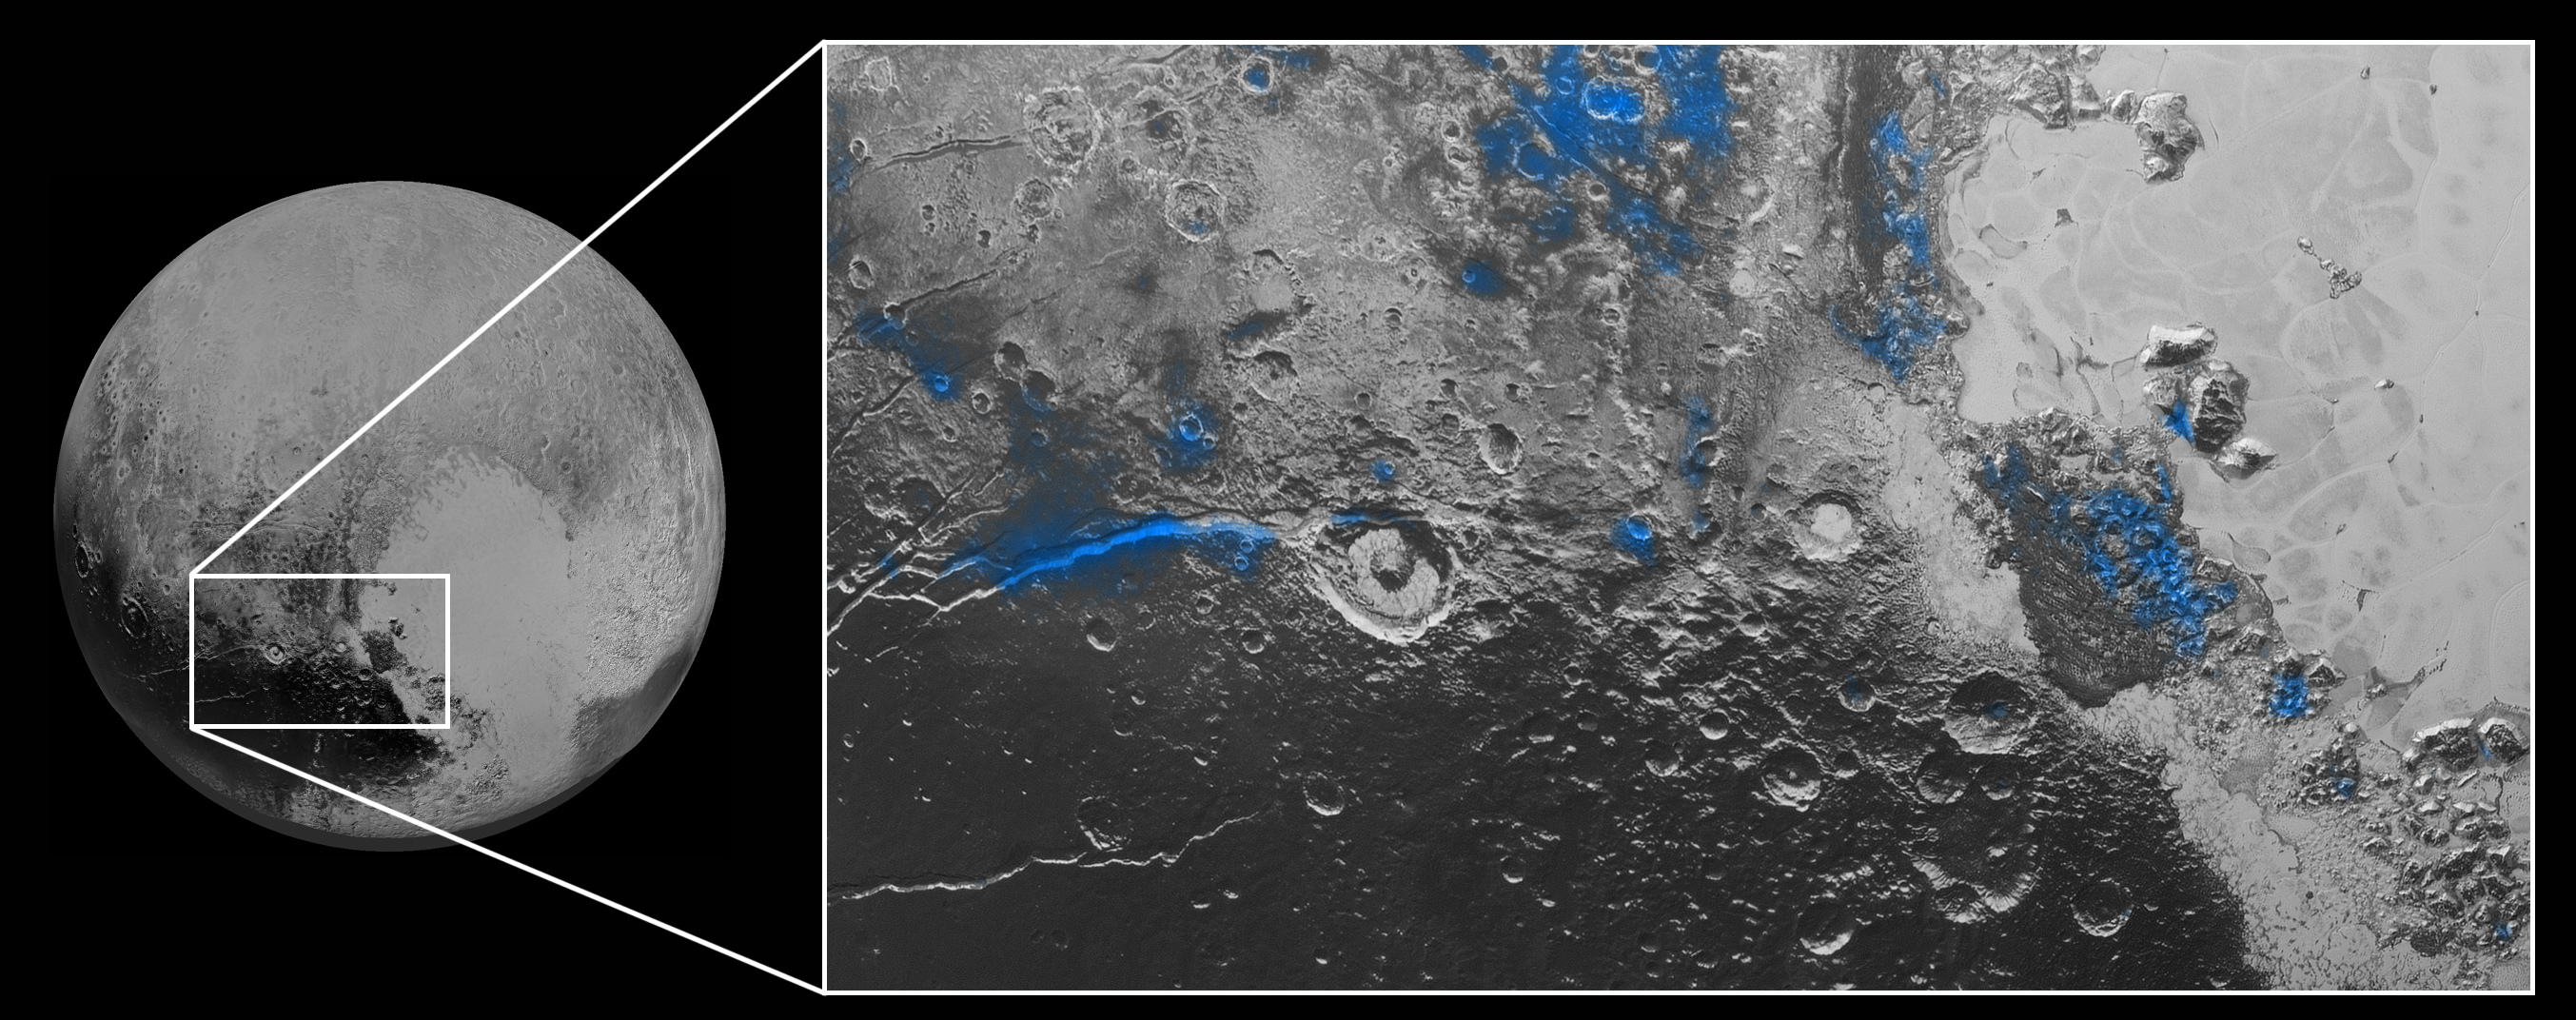 Water Ice on Pluto: Regions with exposed water ice are highlighted in blue in this composite image from New Horizons' Ralph instrument, combining visible imagery from the Multispectral Visible Imaging Camera (MVIC) with infrared spectroscopy from the Linear Etalon Imaging Spectral Array (LEISA). The strongest signatures of water ice occur along Virgil Fossa, just west of Elliot crater on the left side of the inset image, and also in Viking Terra near the top of the frame. A major outcrop also occurs in Baré Montes towards the right of the image, along with numerous much smaller outcrops, mostly associated with impact craters and valleys between mountains. The scene is approximately 280 miles (450 kilometers) across. Note that all surface feature names are informal.